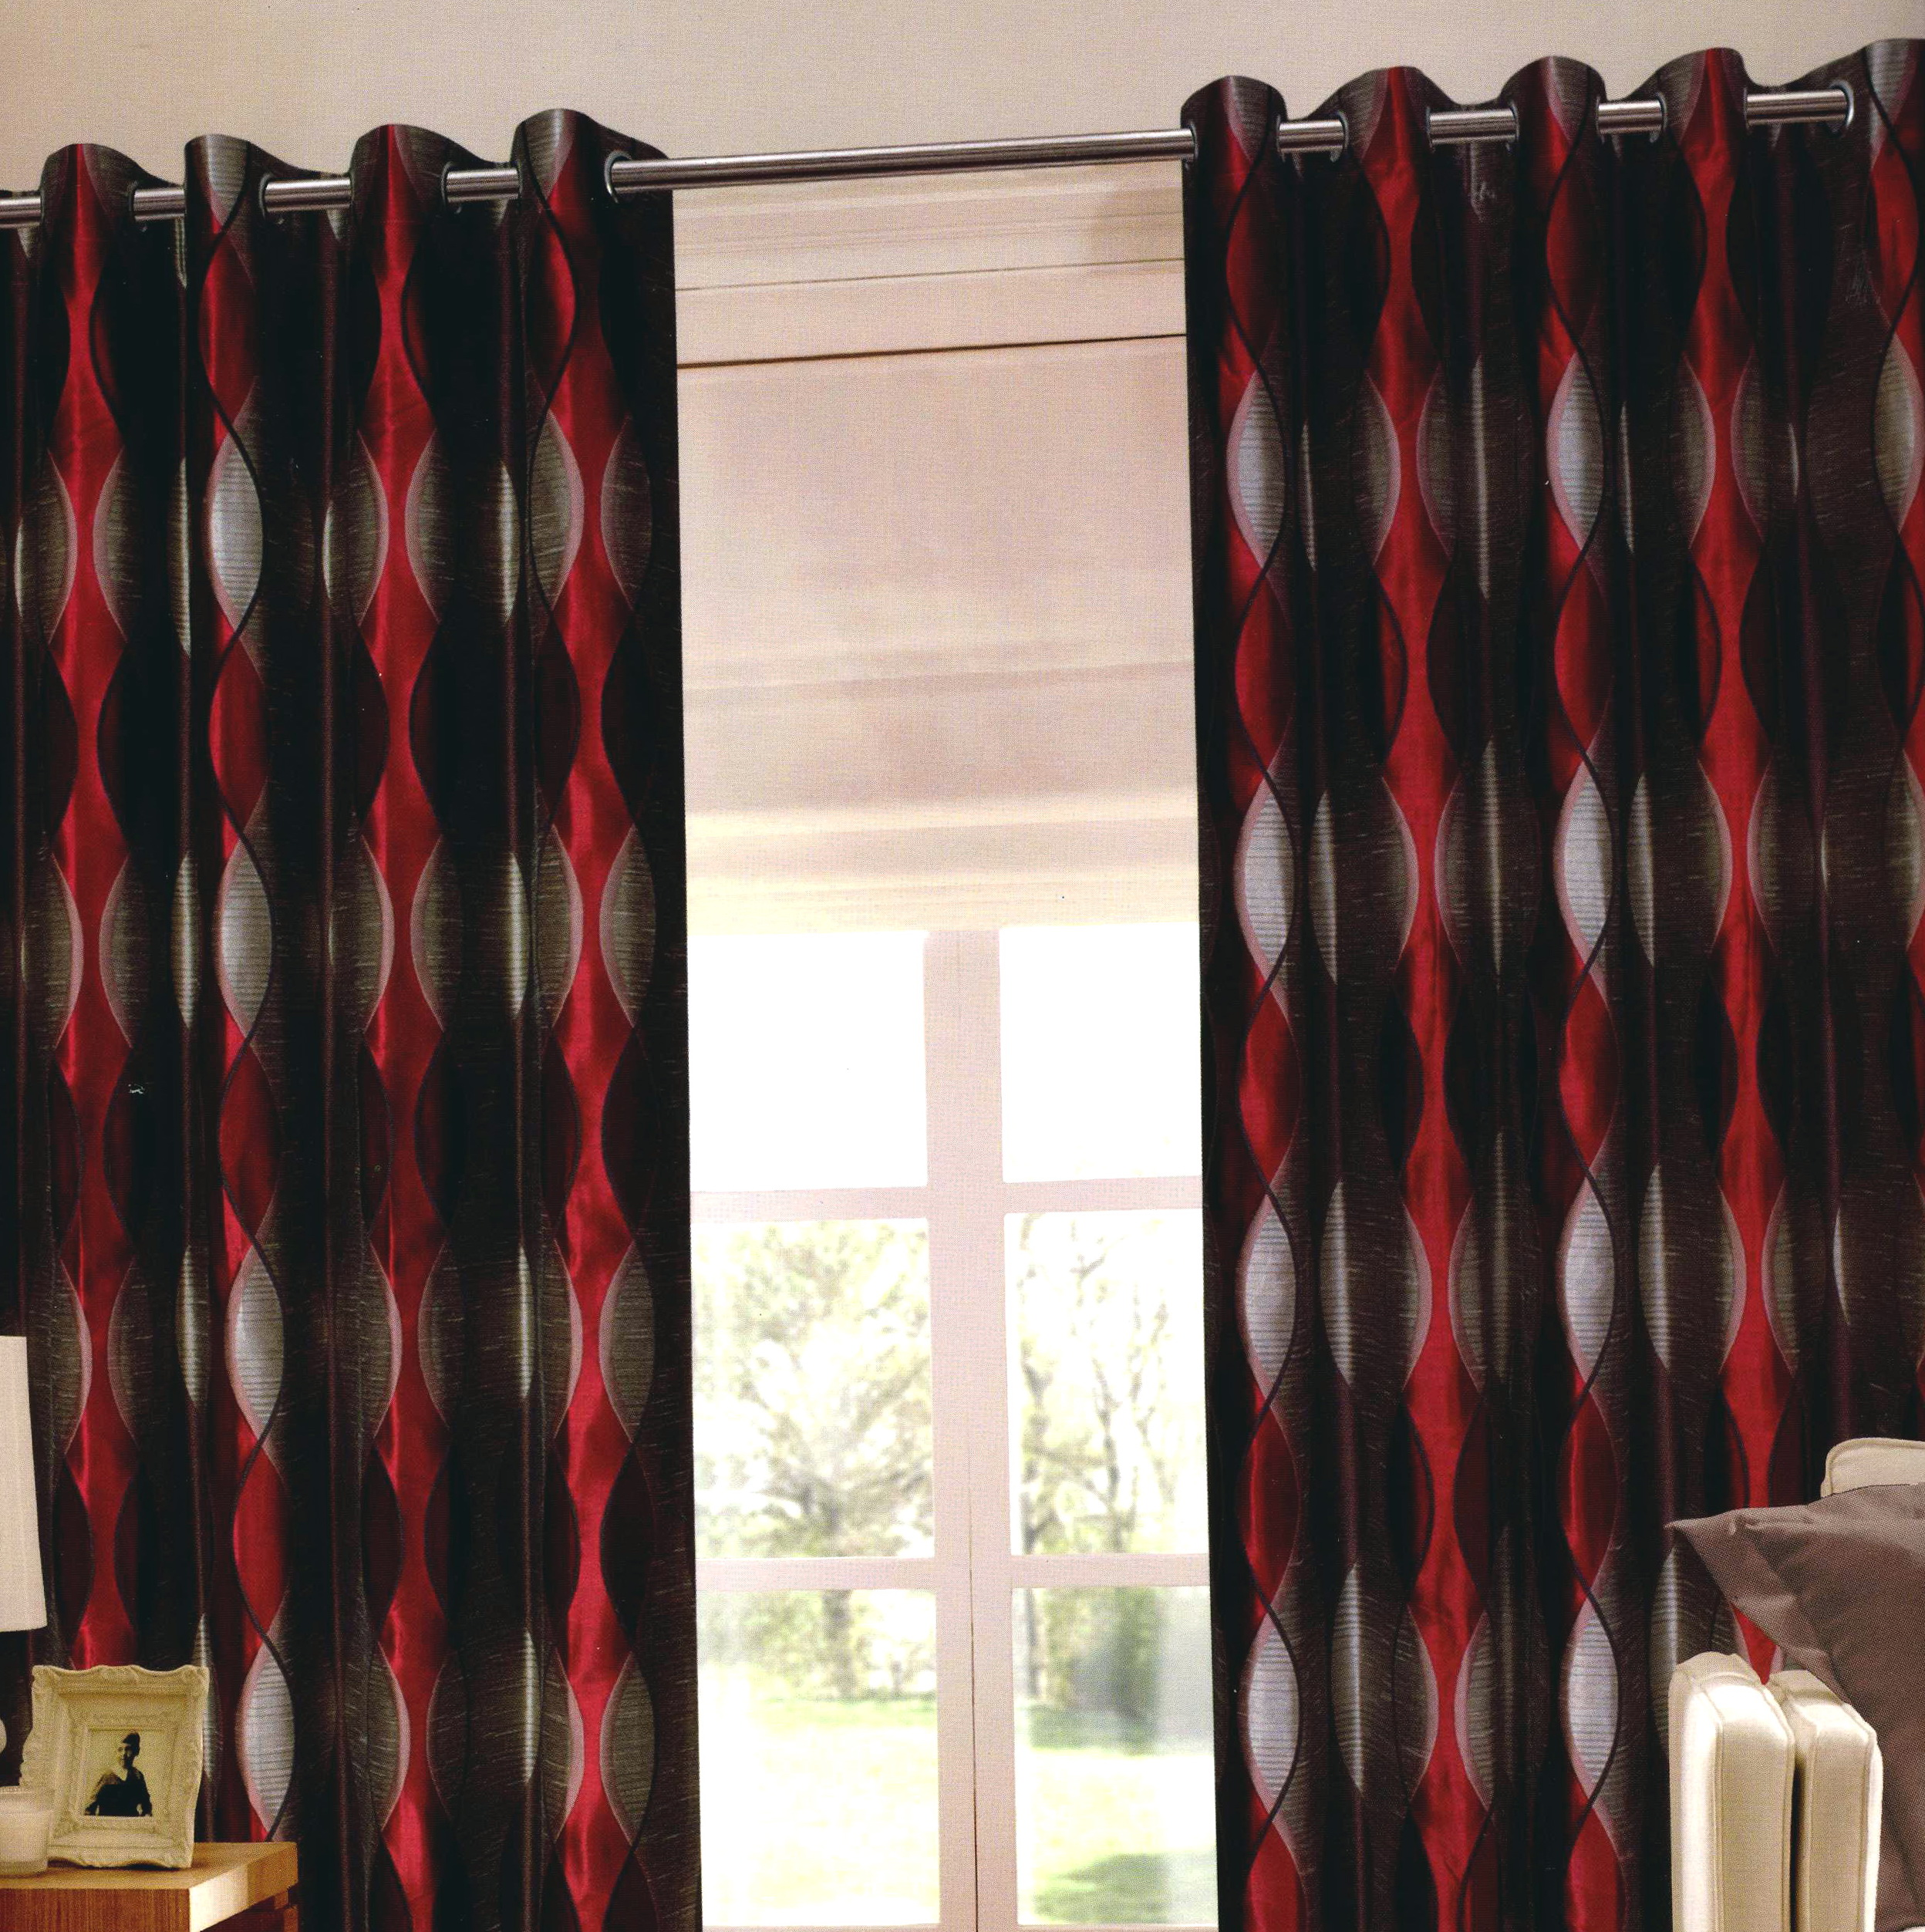 Black Red And Cream Curtains Home Design Ideas